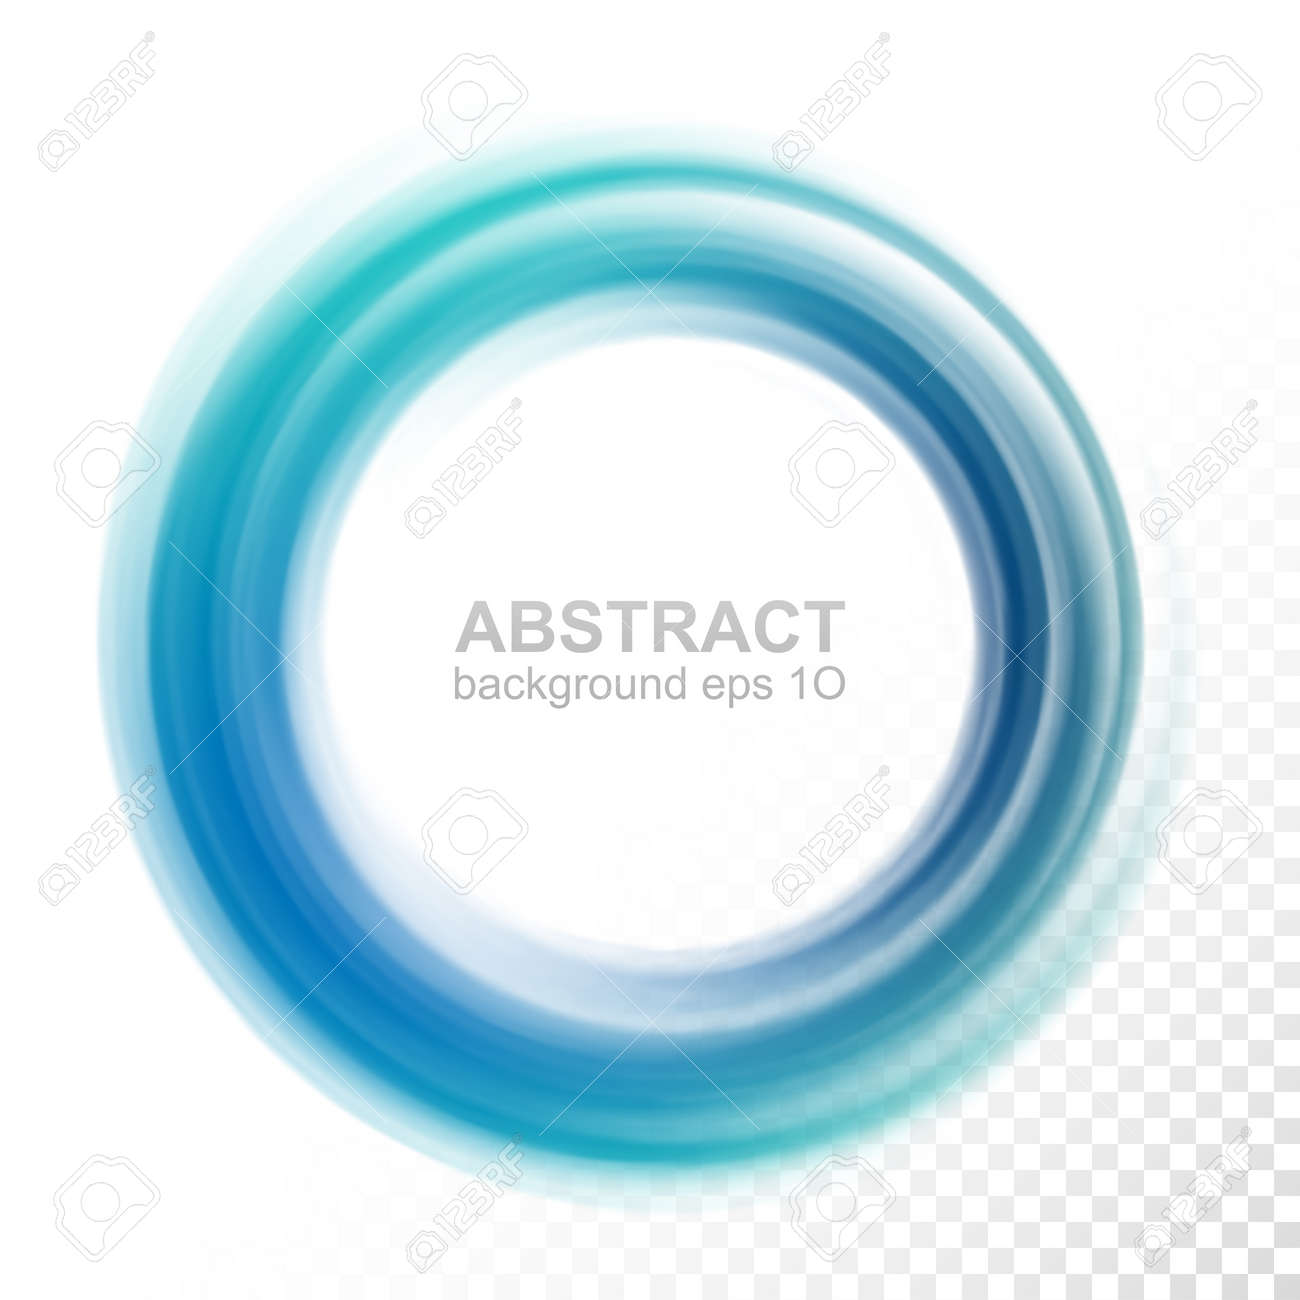 Abstract Transparent Blue Swirl Circle Vector Illustration Eps